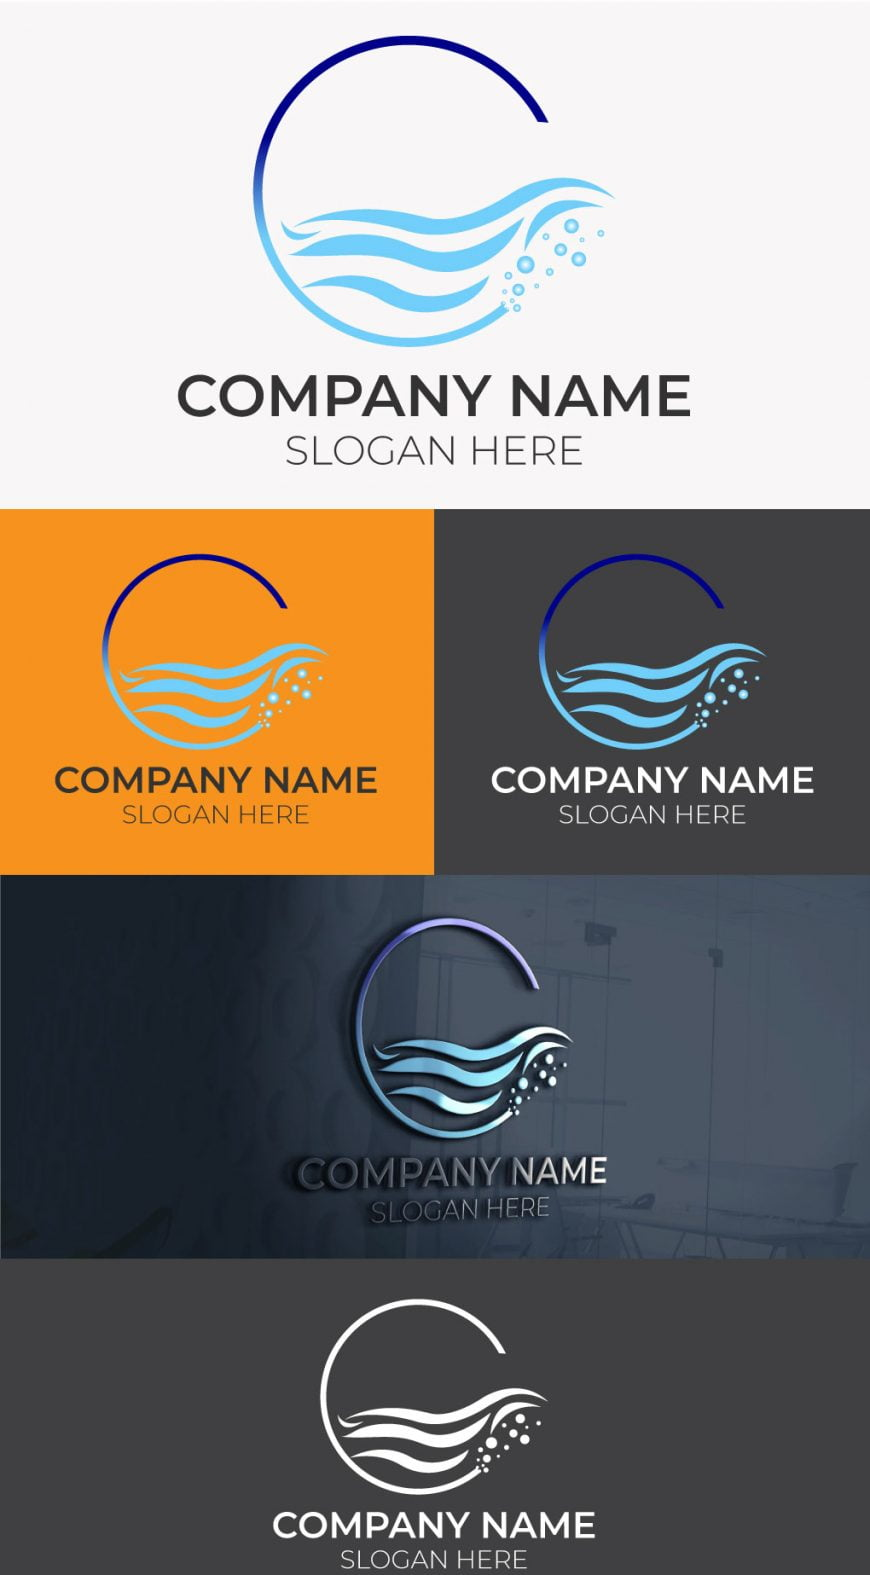 water-company-logo-template